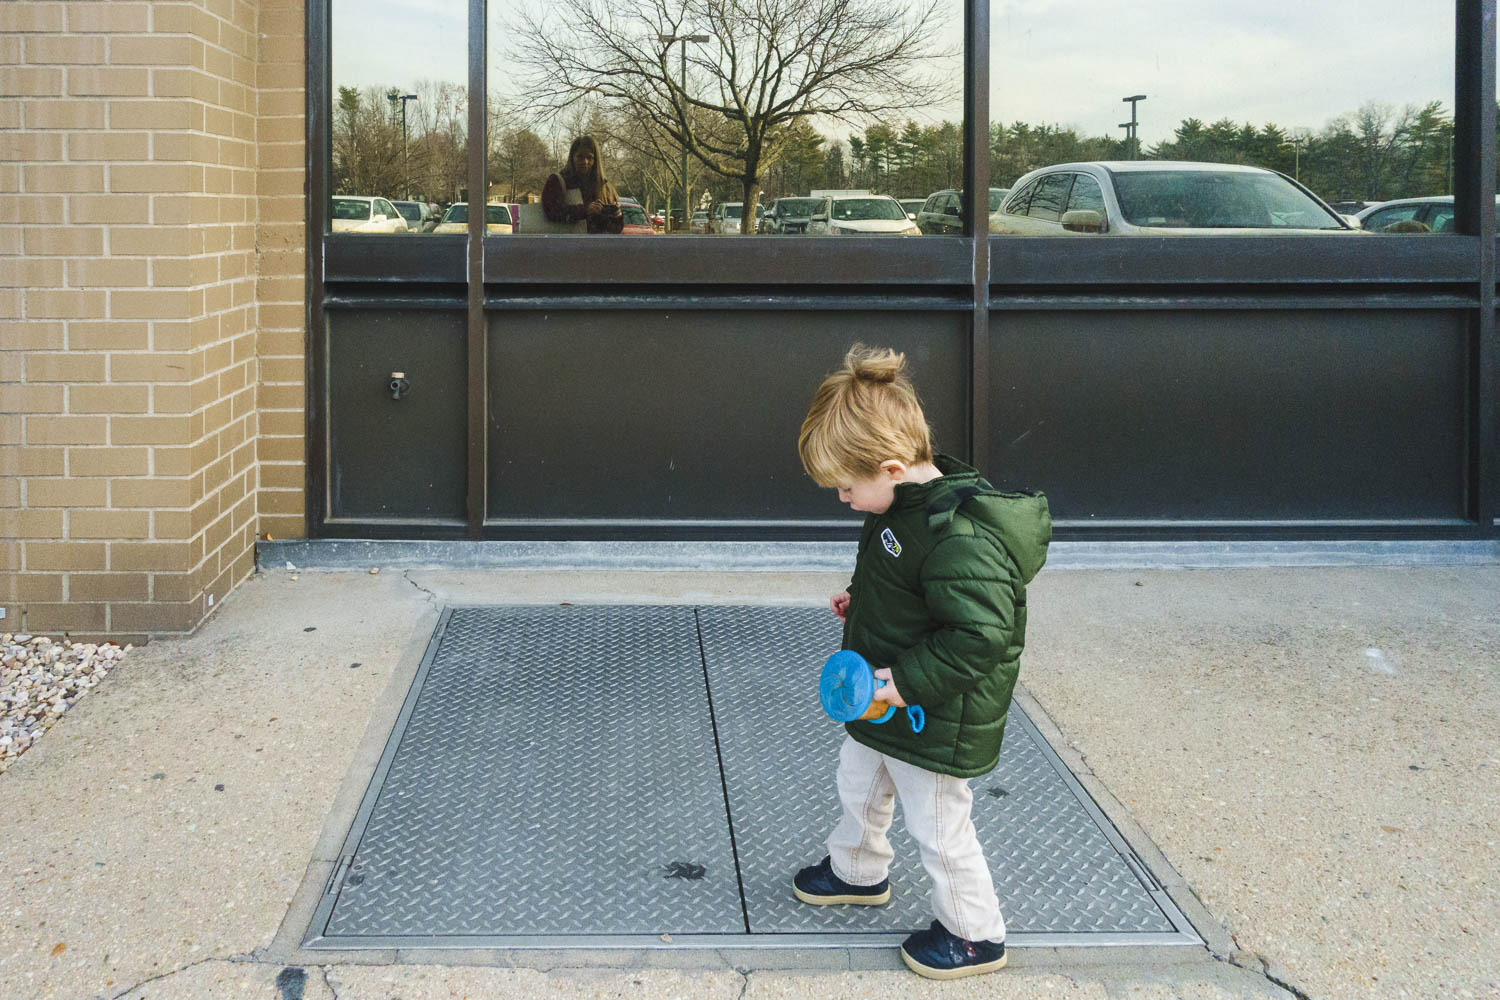 Little boy stomping on metal grate.